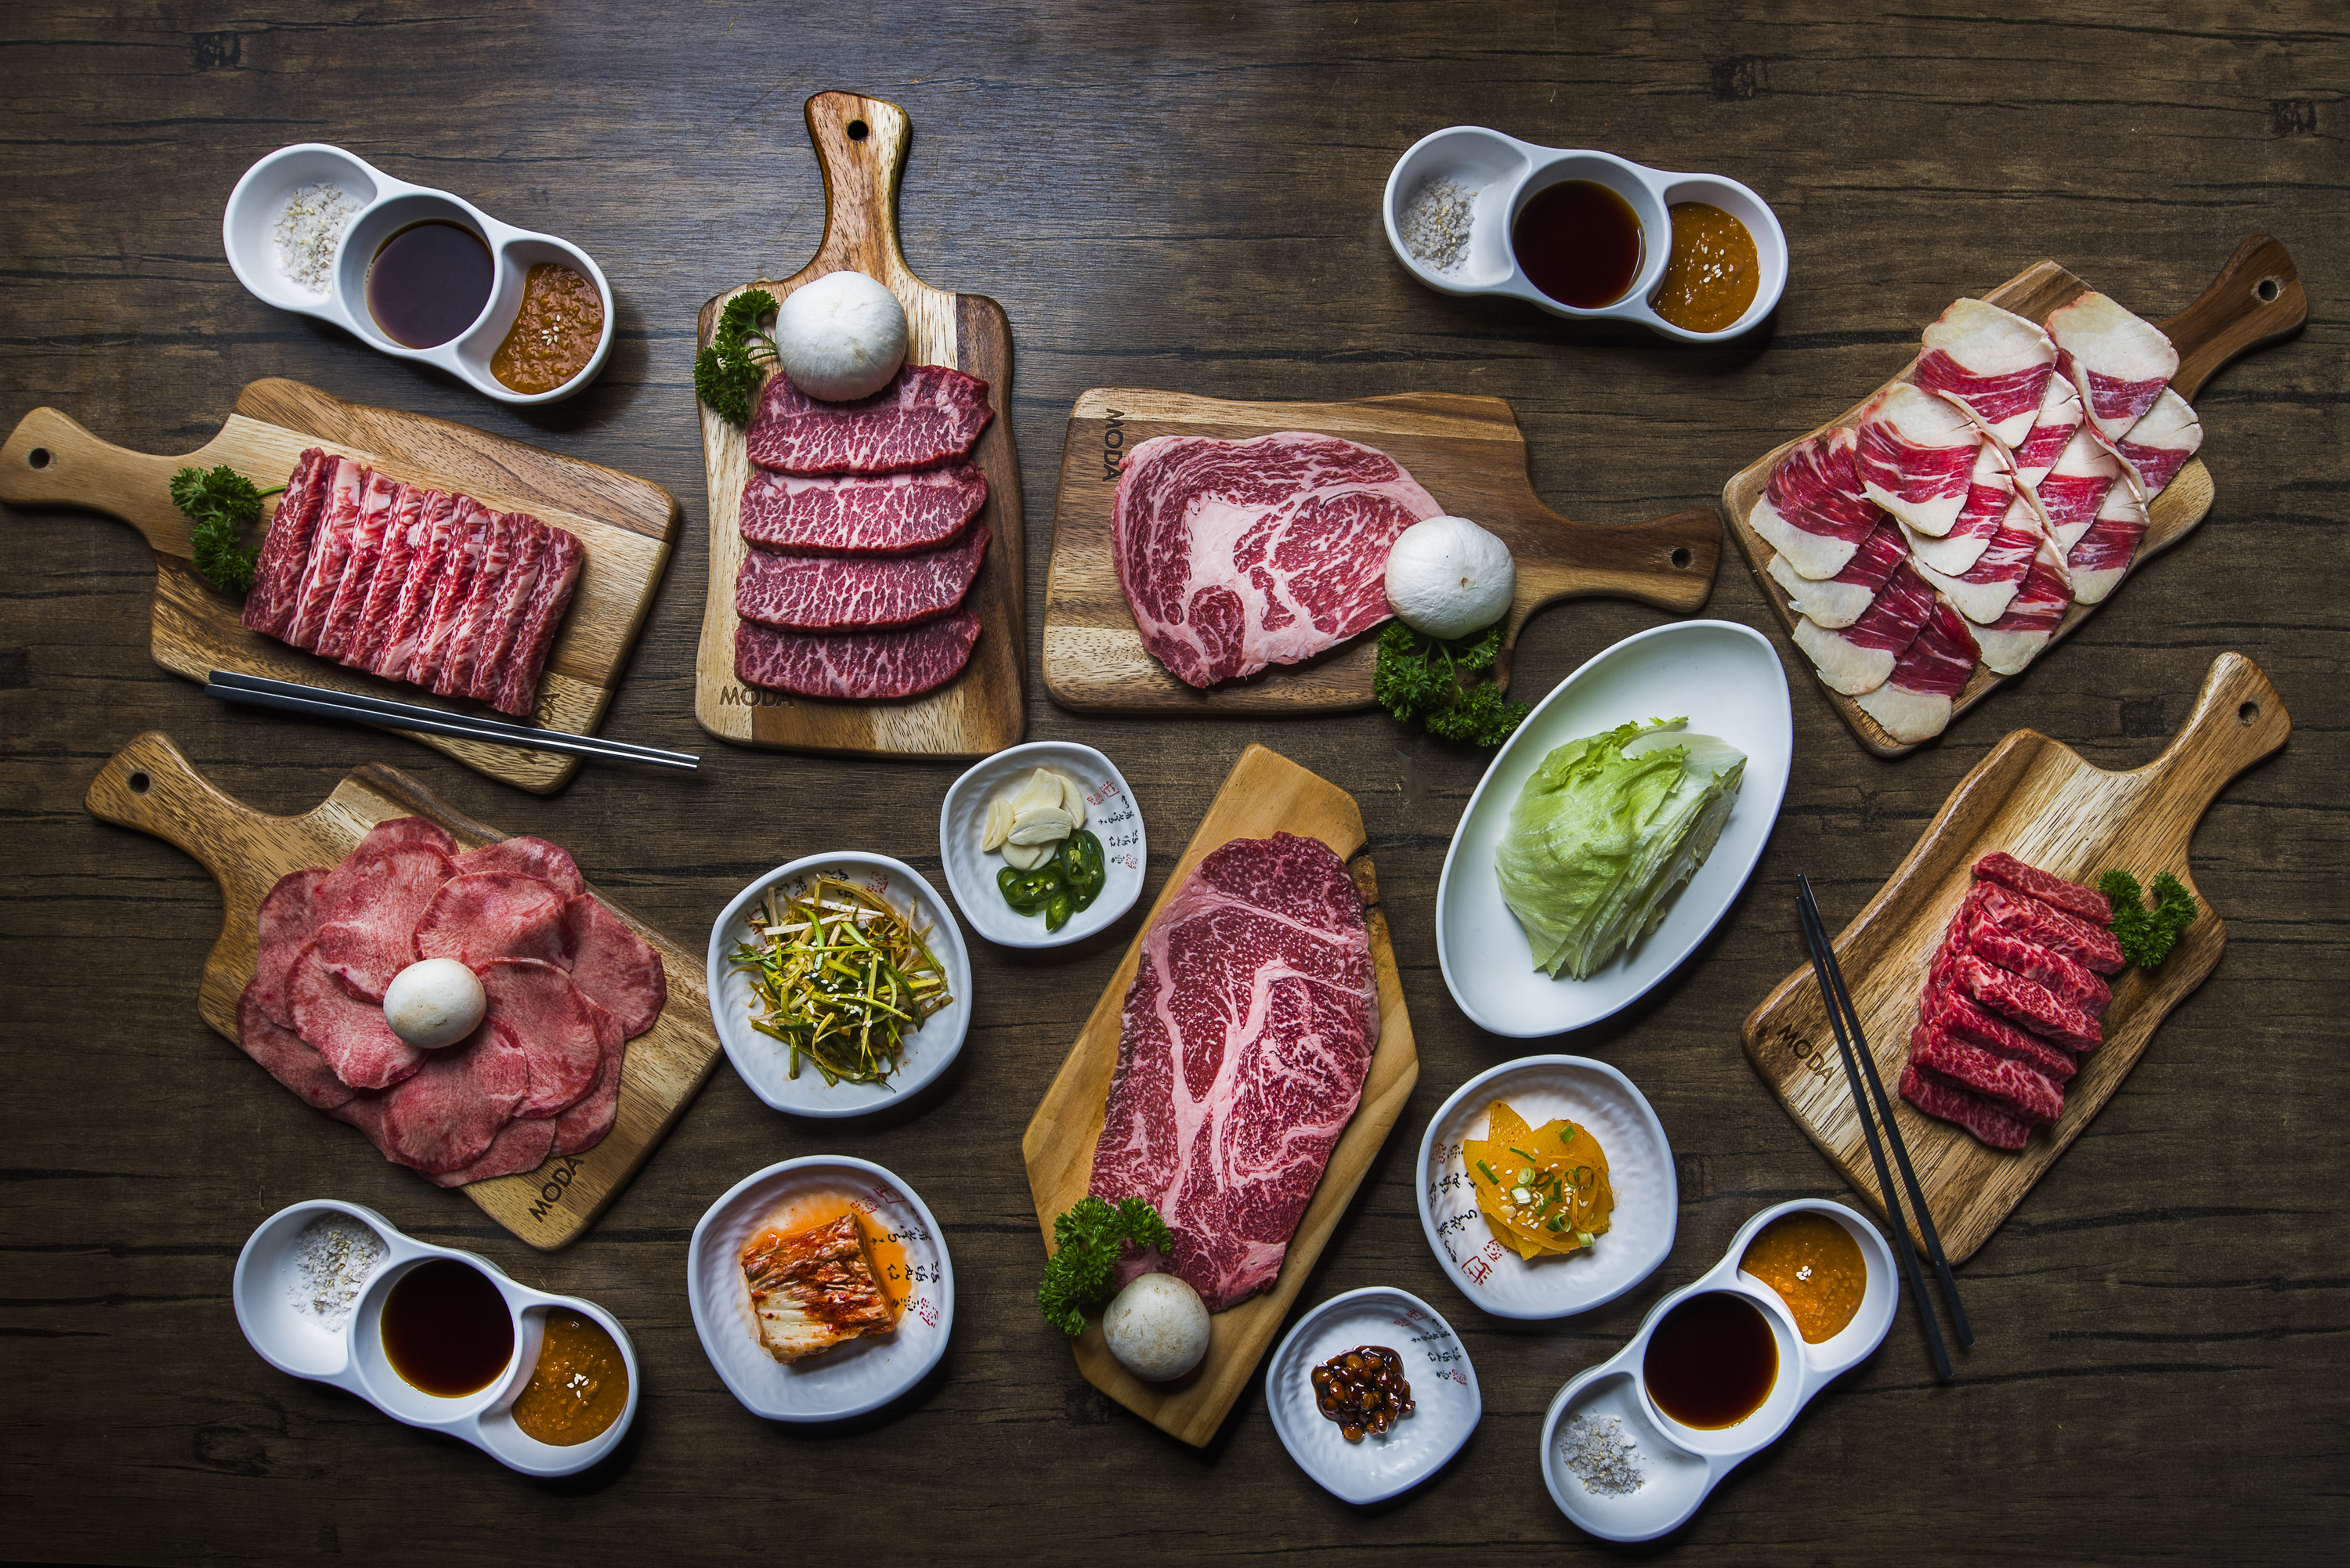 A selection of food destined for a barbecue grill